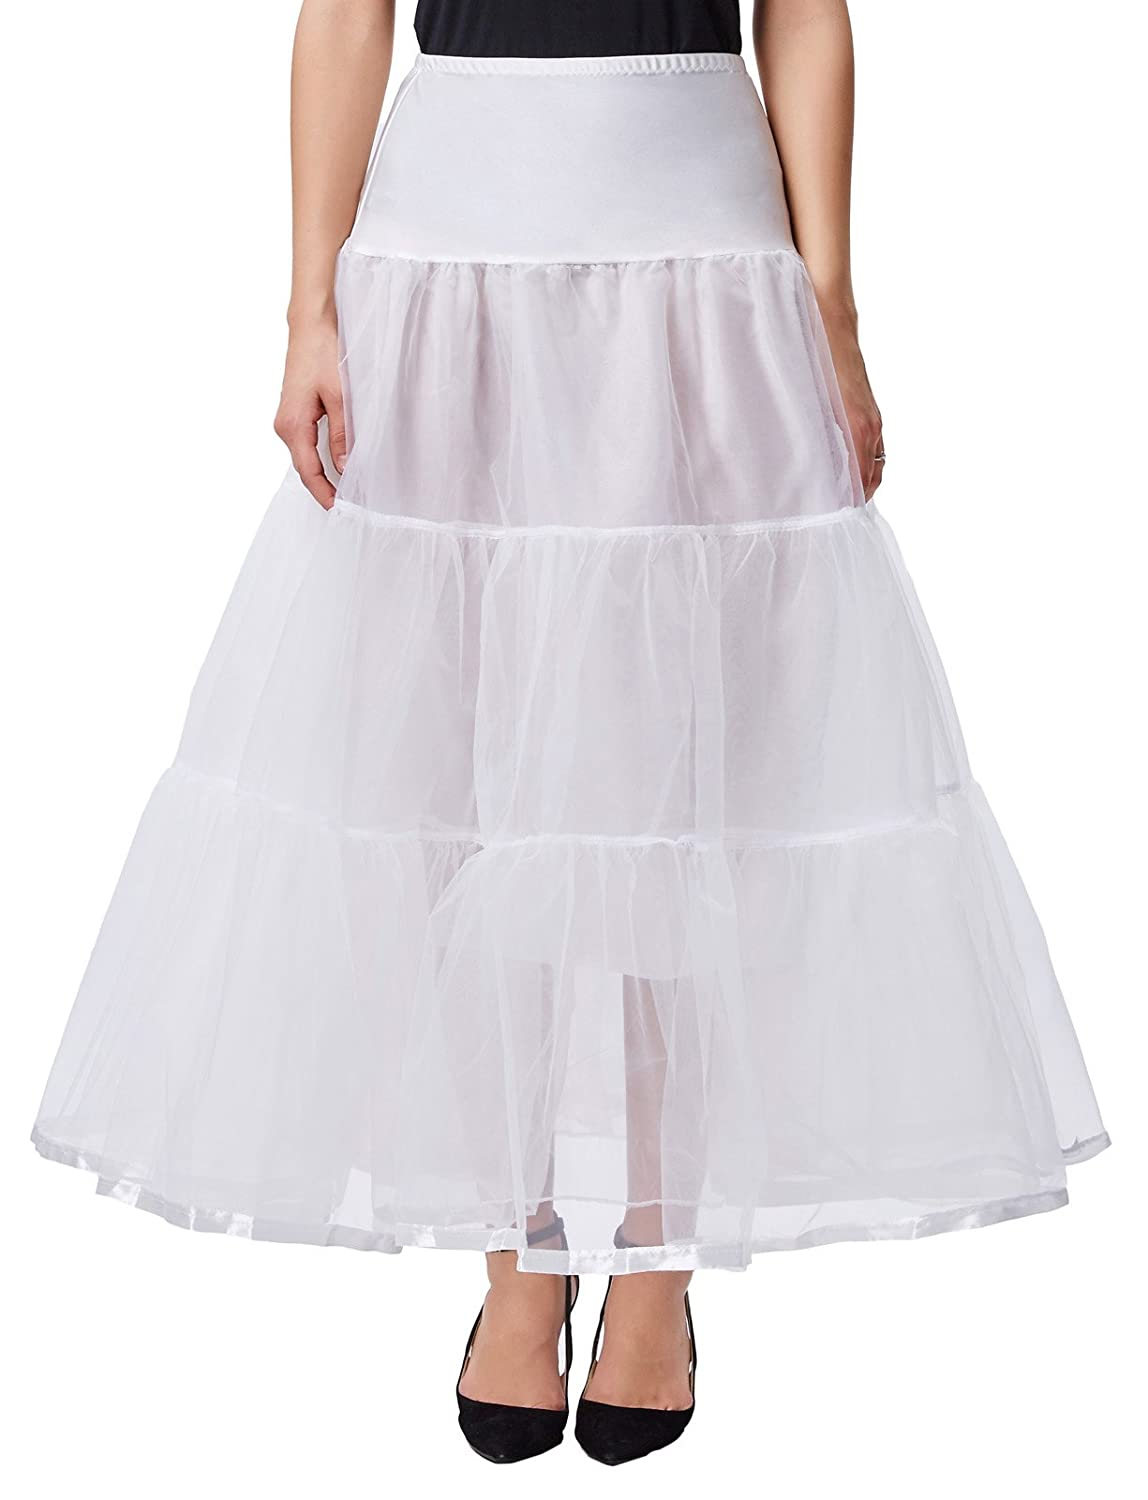 Crinoline Skirt | Crinoline Slips | Crinoline Petticoat  Ankle Length Petticoats Wedding Slips Plus Size S-3X GRACE KARIN Womens $19.99 AT vintagedancer.com